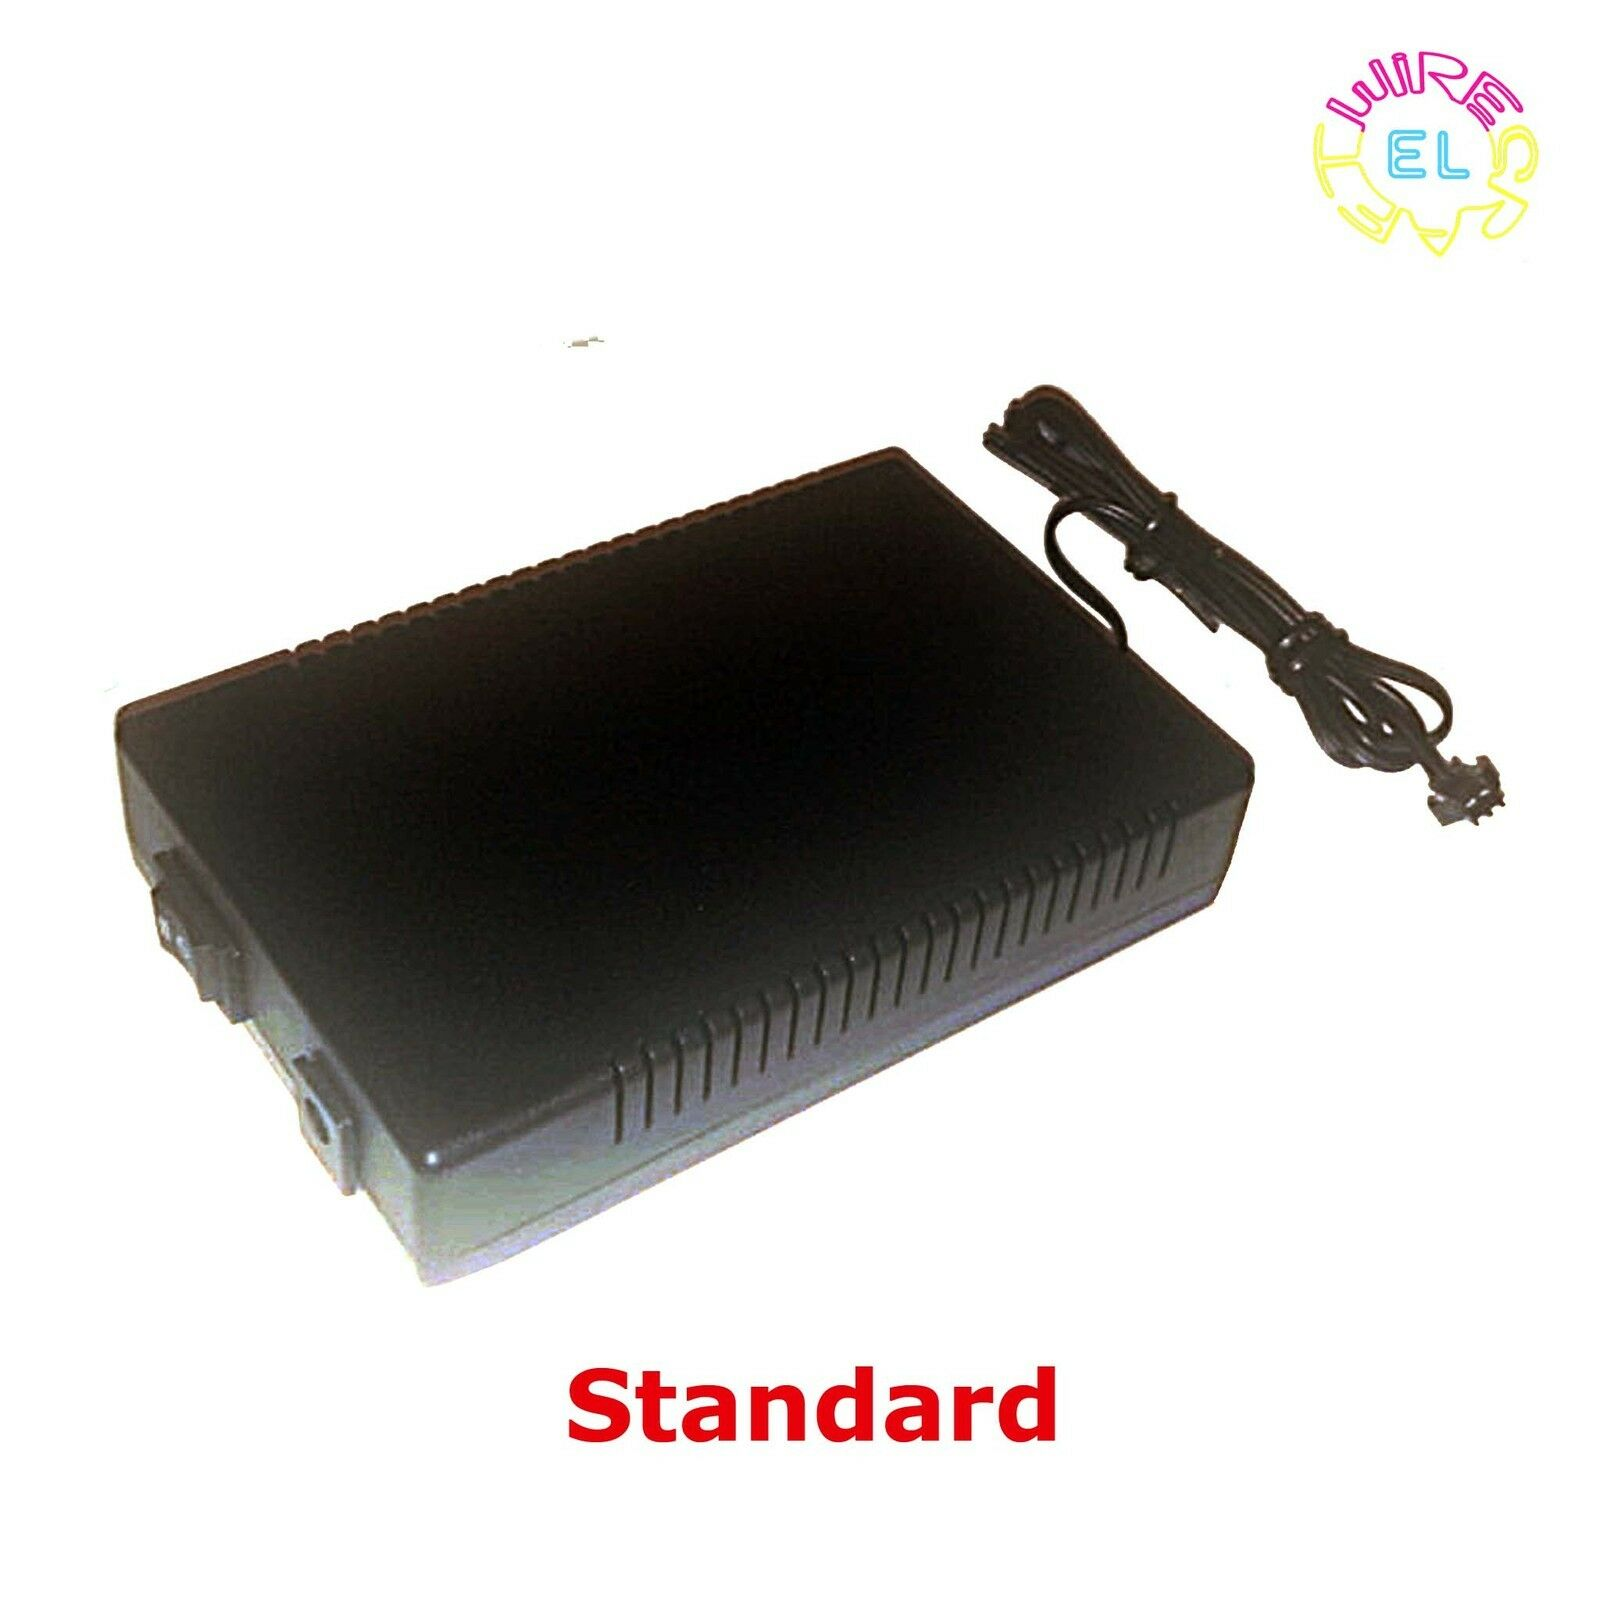 Portable 12v Excel Driver for 20 - 50m of EL Wire - Standard